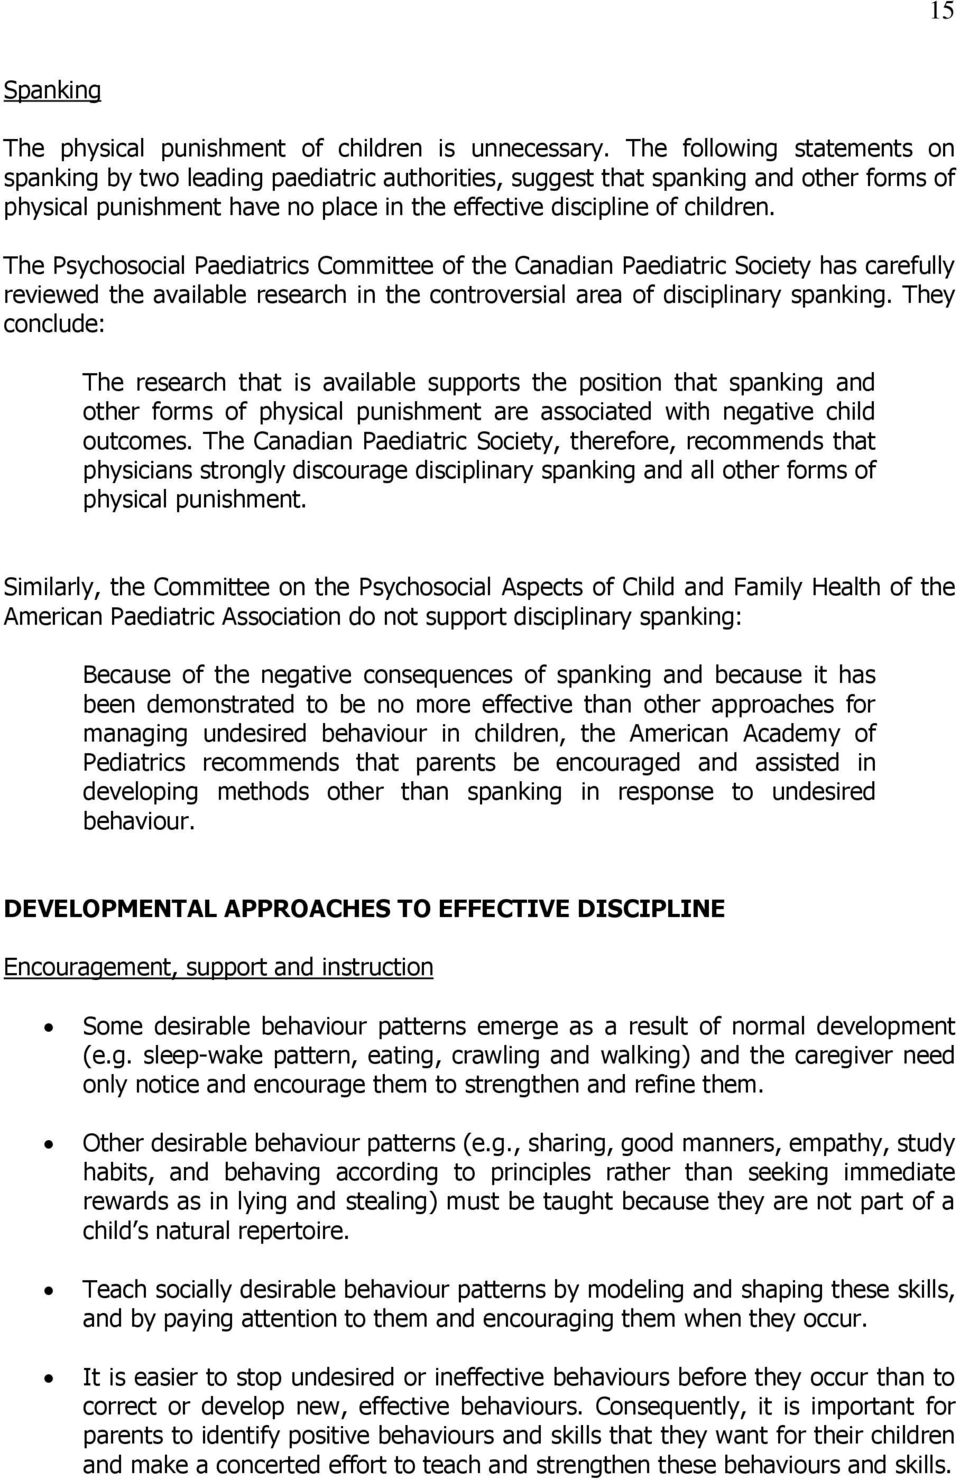 The Psychosocial Paediatrics Committee of the Canadian Paediatric Society has carefully reviewed the available research in the controversial area of disciplinary spanking.